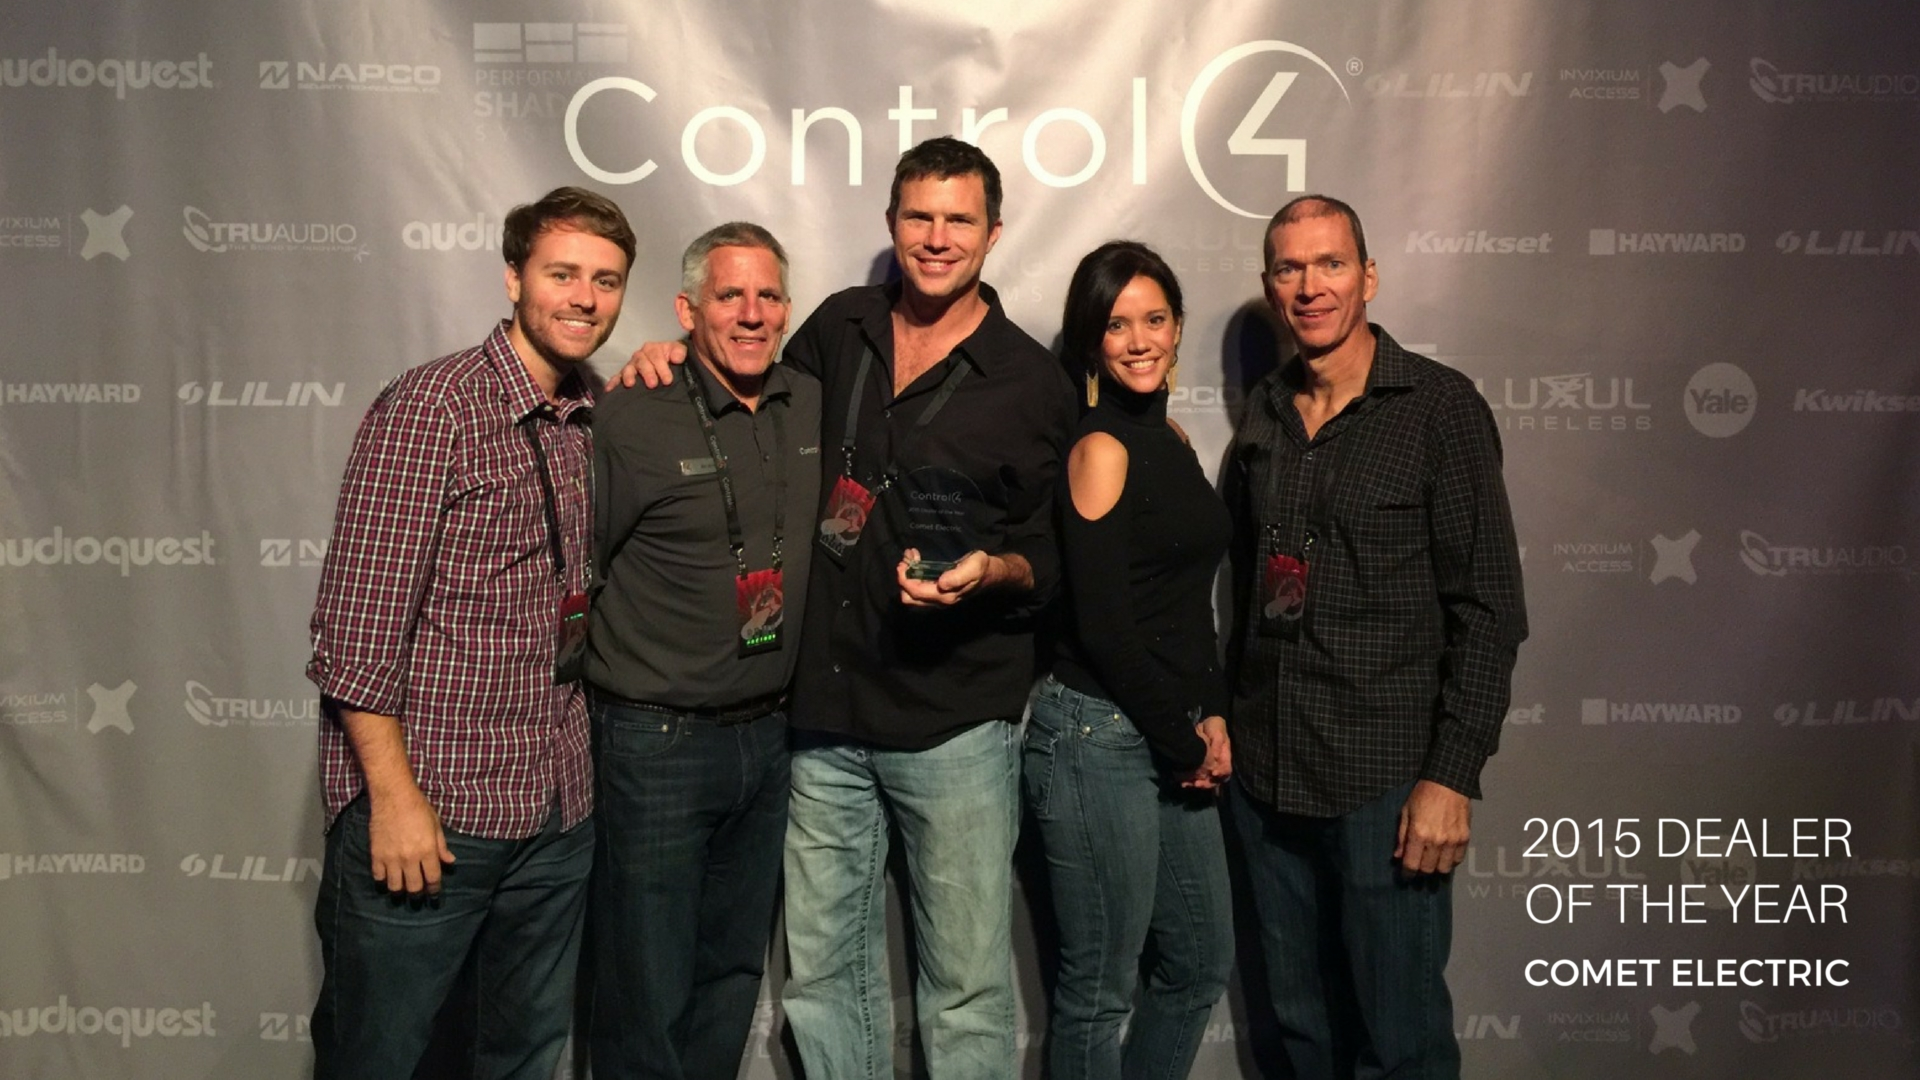 Control4 Celebrates Another Year of Dealer Growth with 2015 Dealer Awards of Excellence: cedia, cedia 2015, control4 dealers,